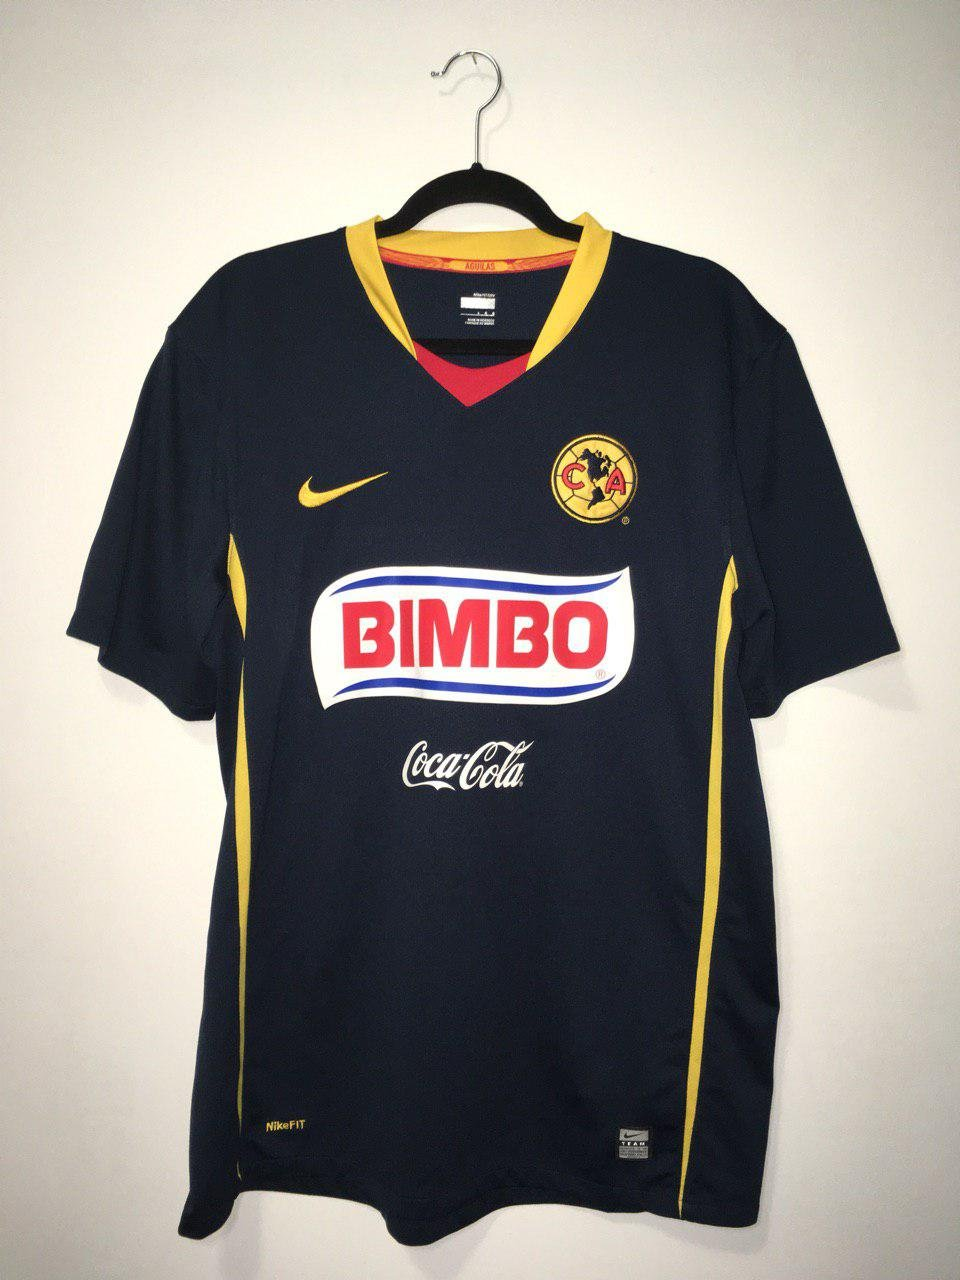 c7dc2e93e Club America Away camisa de futebol 2008 - 2009. Sponsored by Bimbo